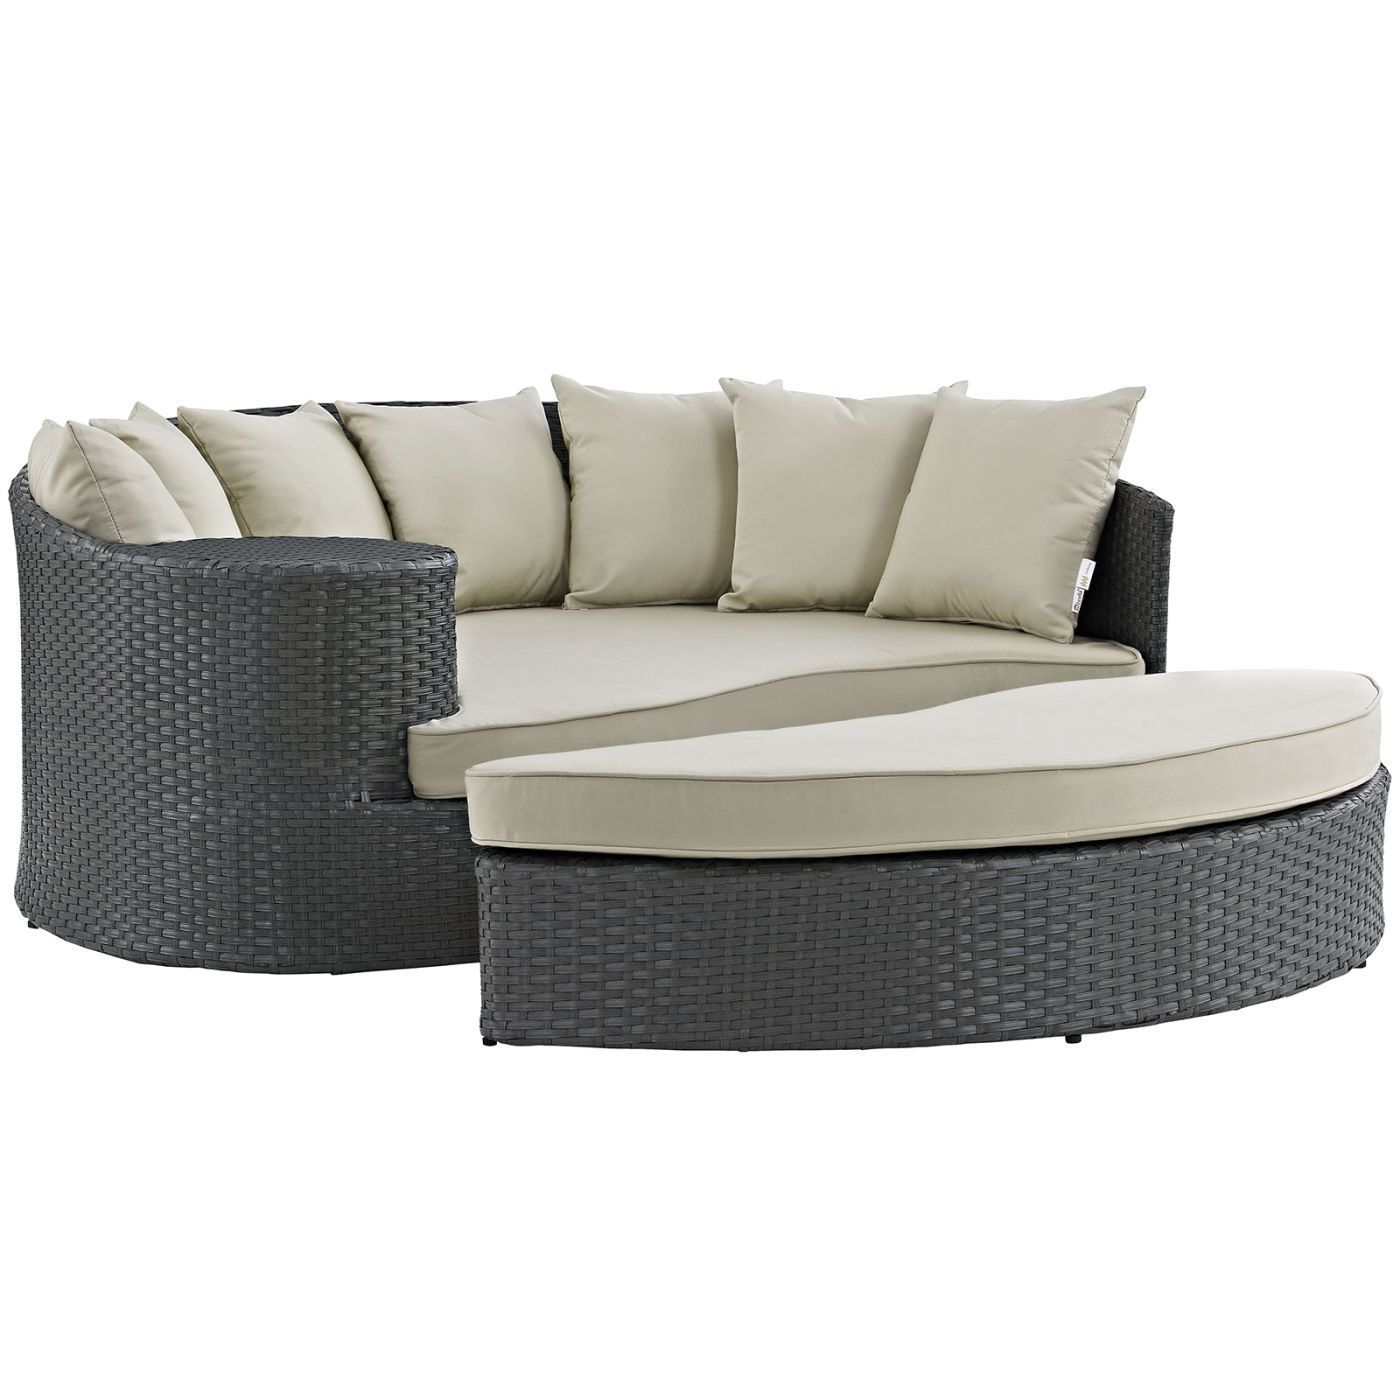 Sojourn Outdoor Patio Rattan Sunbrella Daybed Products Pinterest